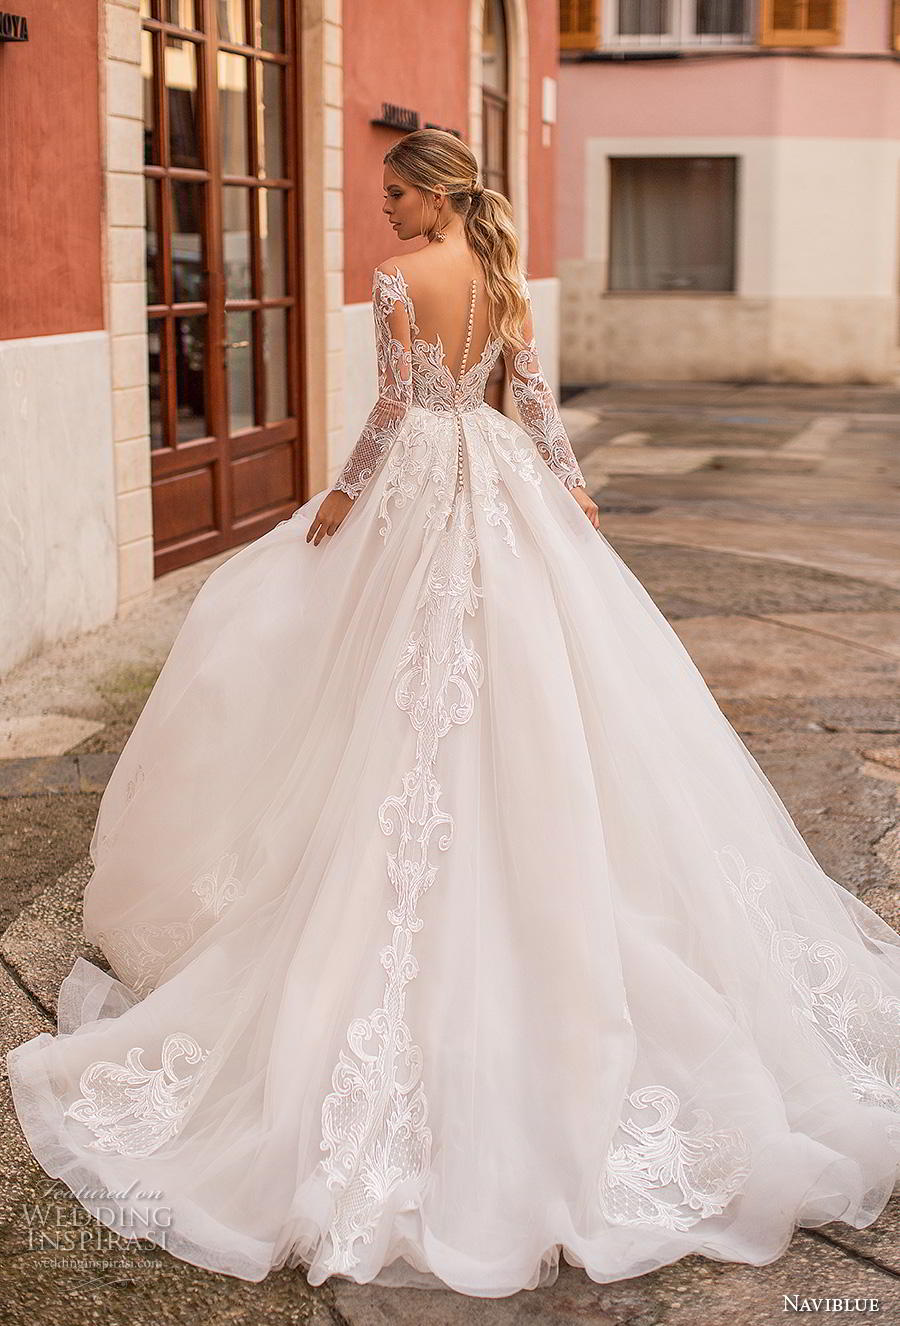 naviblue 2019 bridal long sleeves sweetheart neckline heavily embellished bodice princess ball gown a  line wedding dress sheer button back chapel train (3) bv